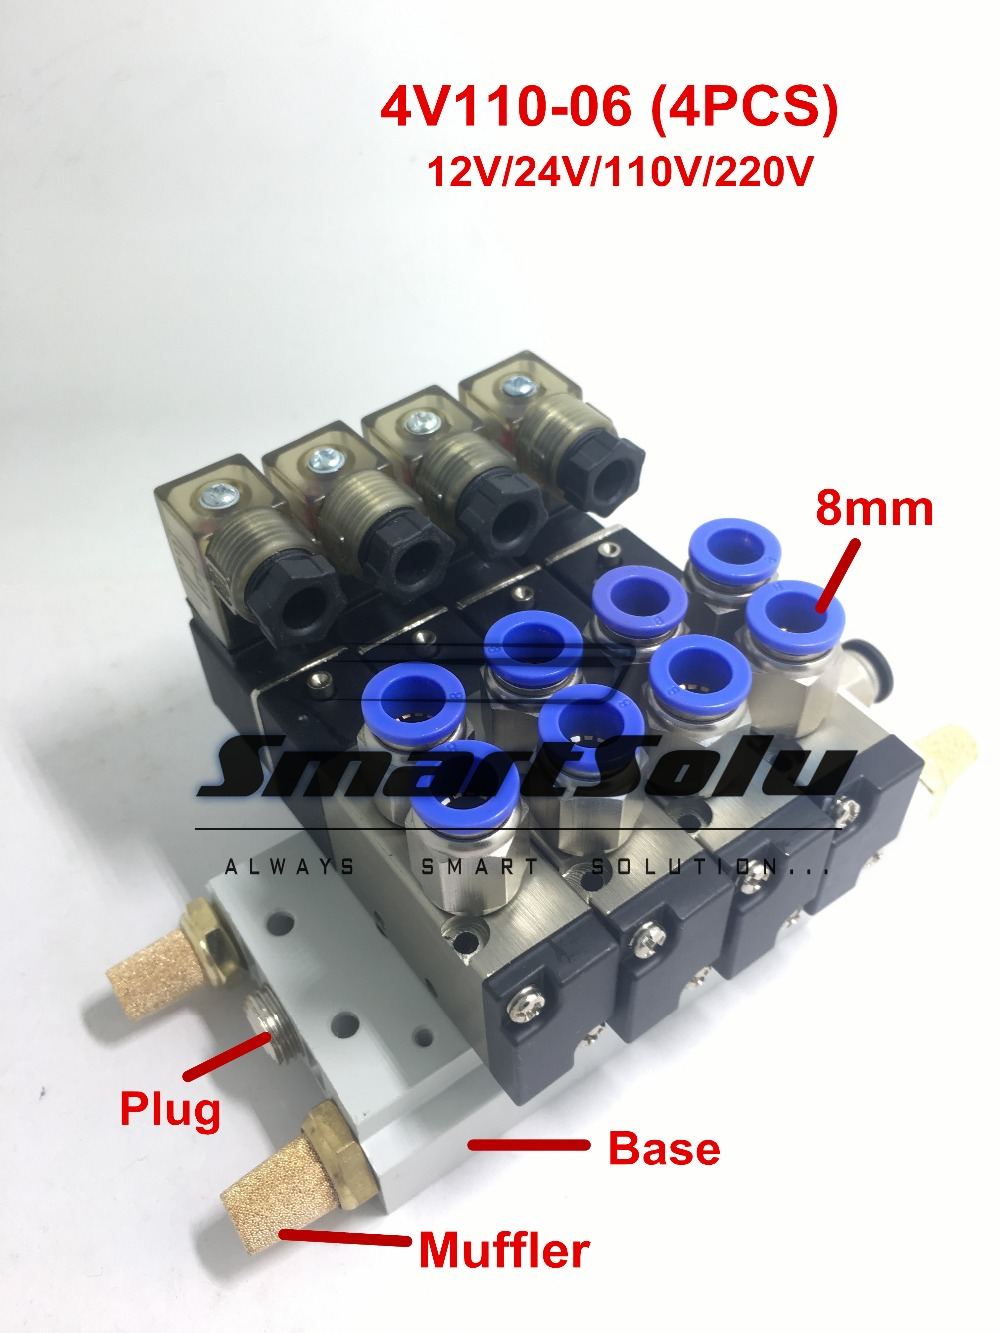 Free shipping 4V110-06 Solenoid Air Valve Set 5port 2position 1/8 BSP Connected Base Muffler Fitting 1pcs 4v110 06 ac220v lamp solenoid air valve 5port 2position bsp